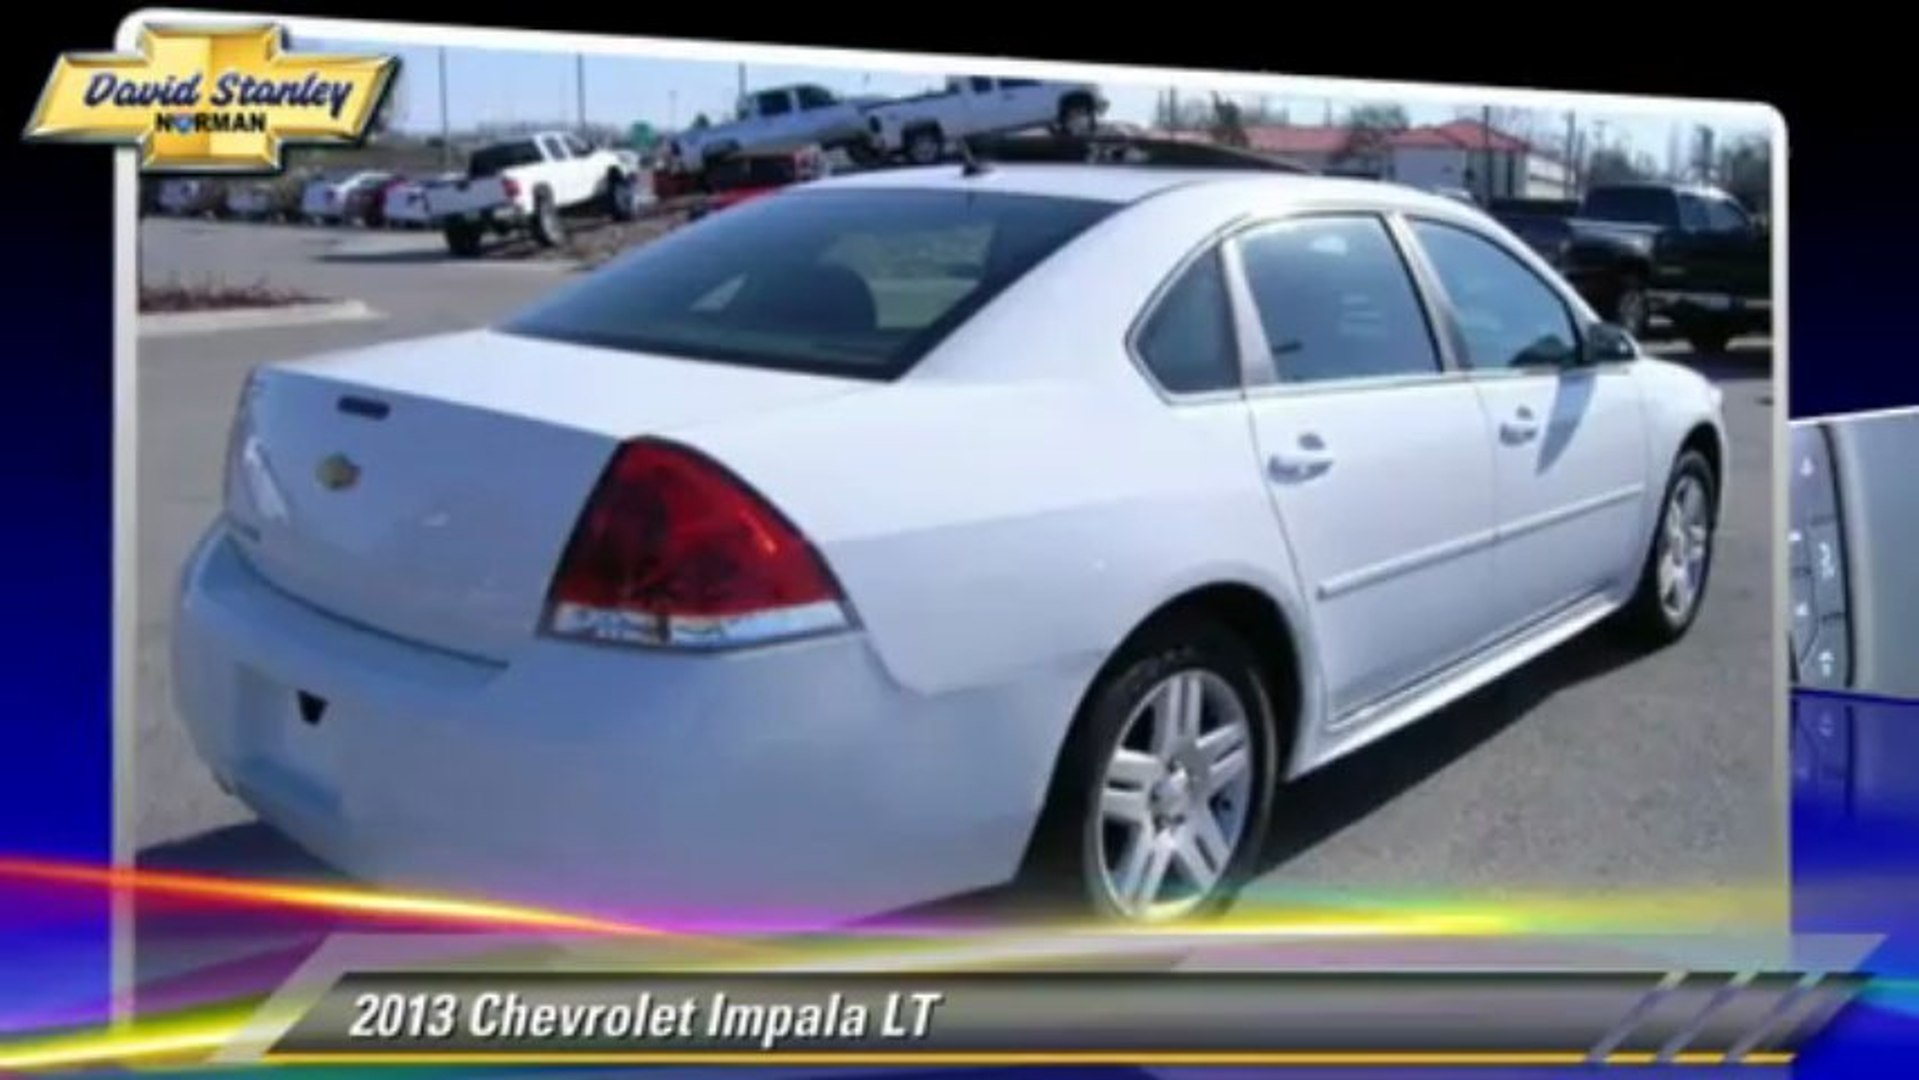 David Stanley Chevy Norman >> 2013 Chevrolet Impala Oklahoma City Ok 2013 Chevy Impala